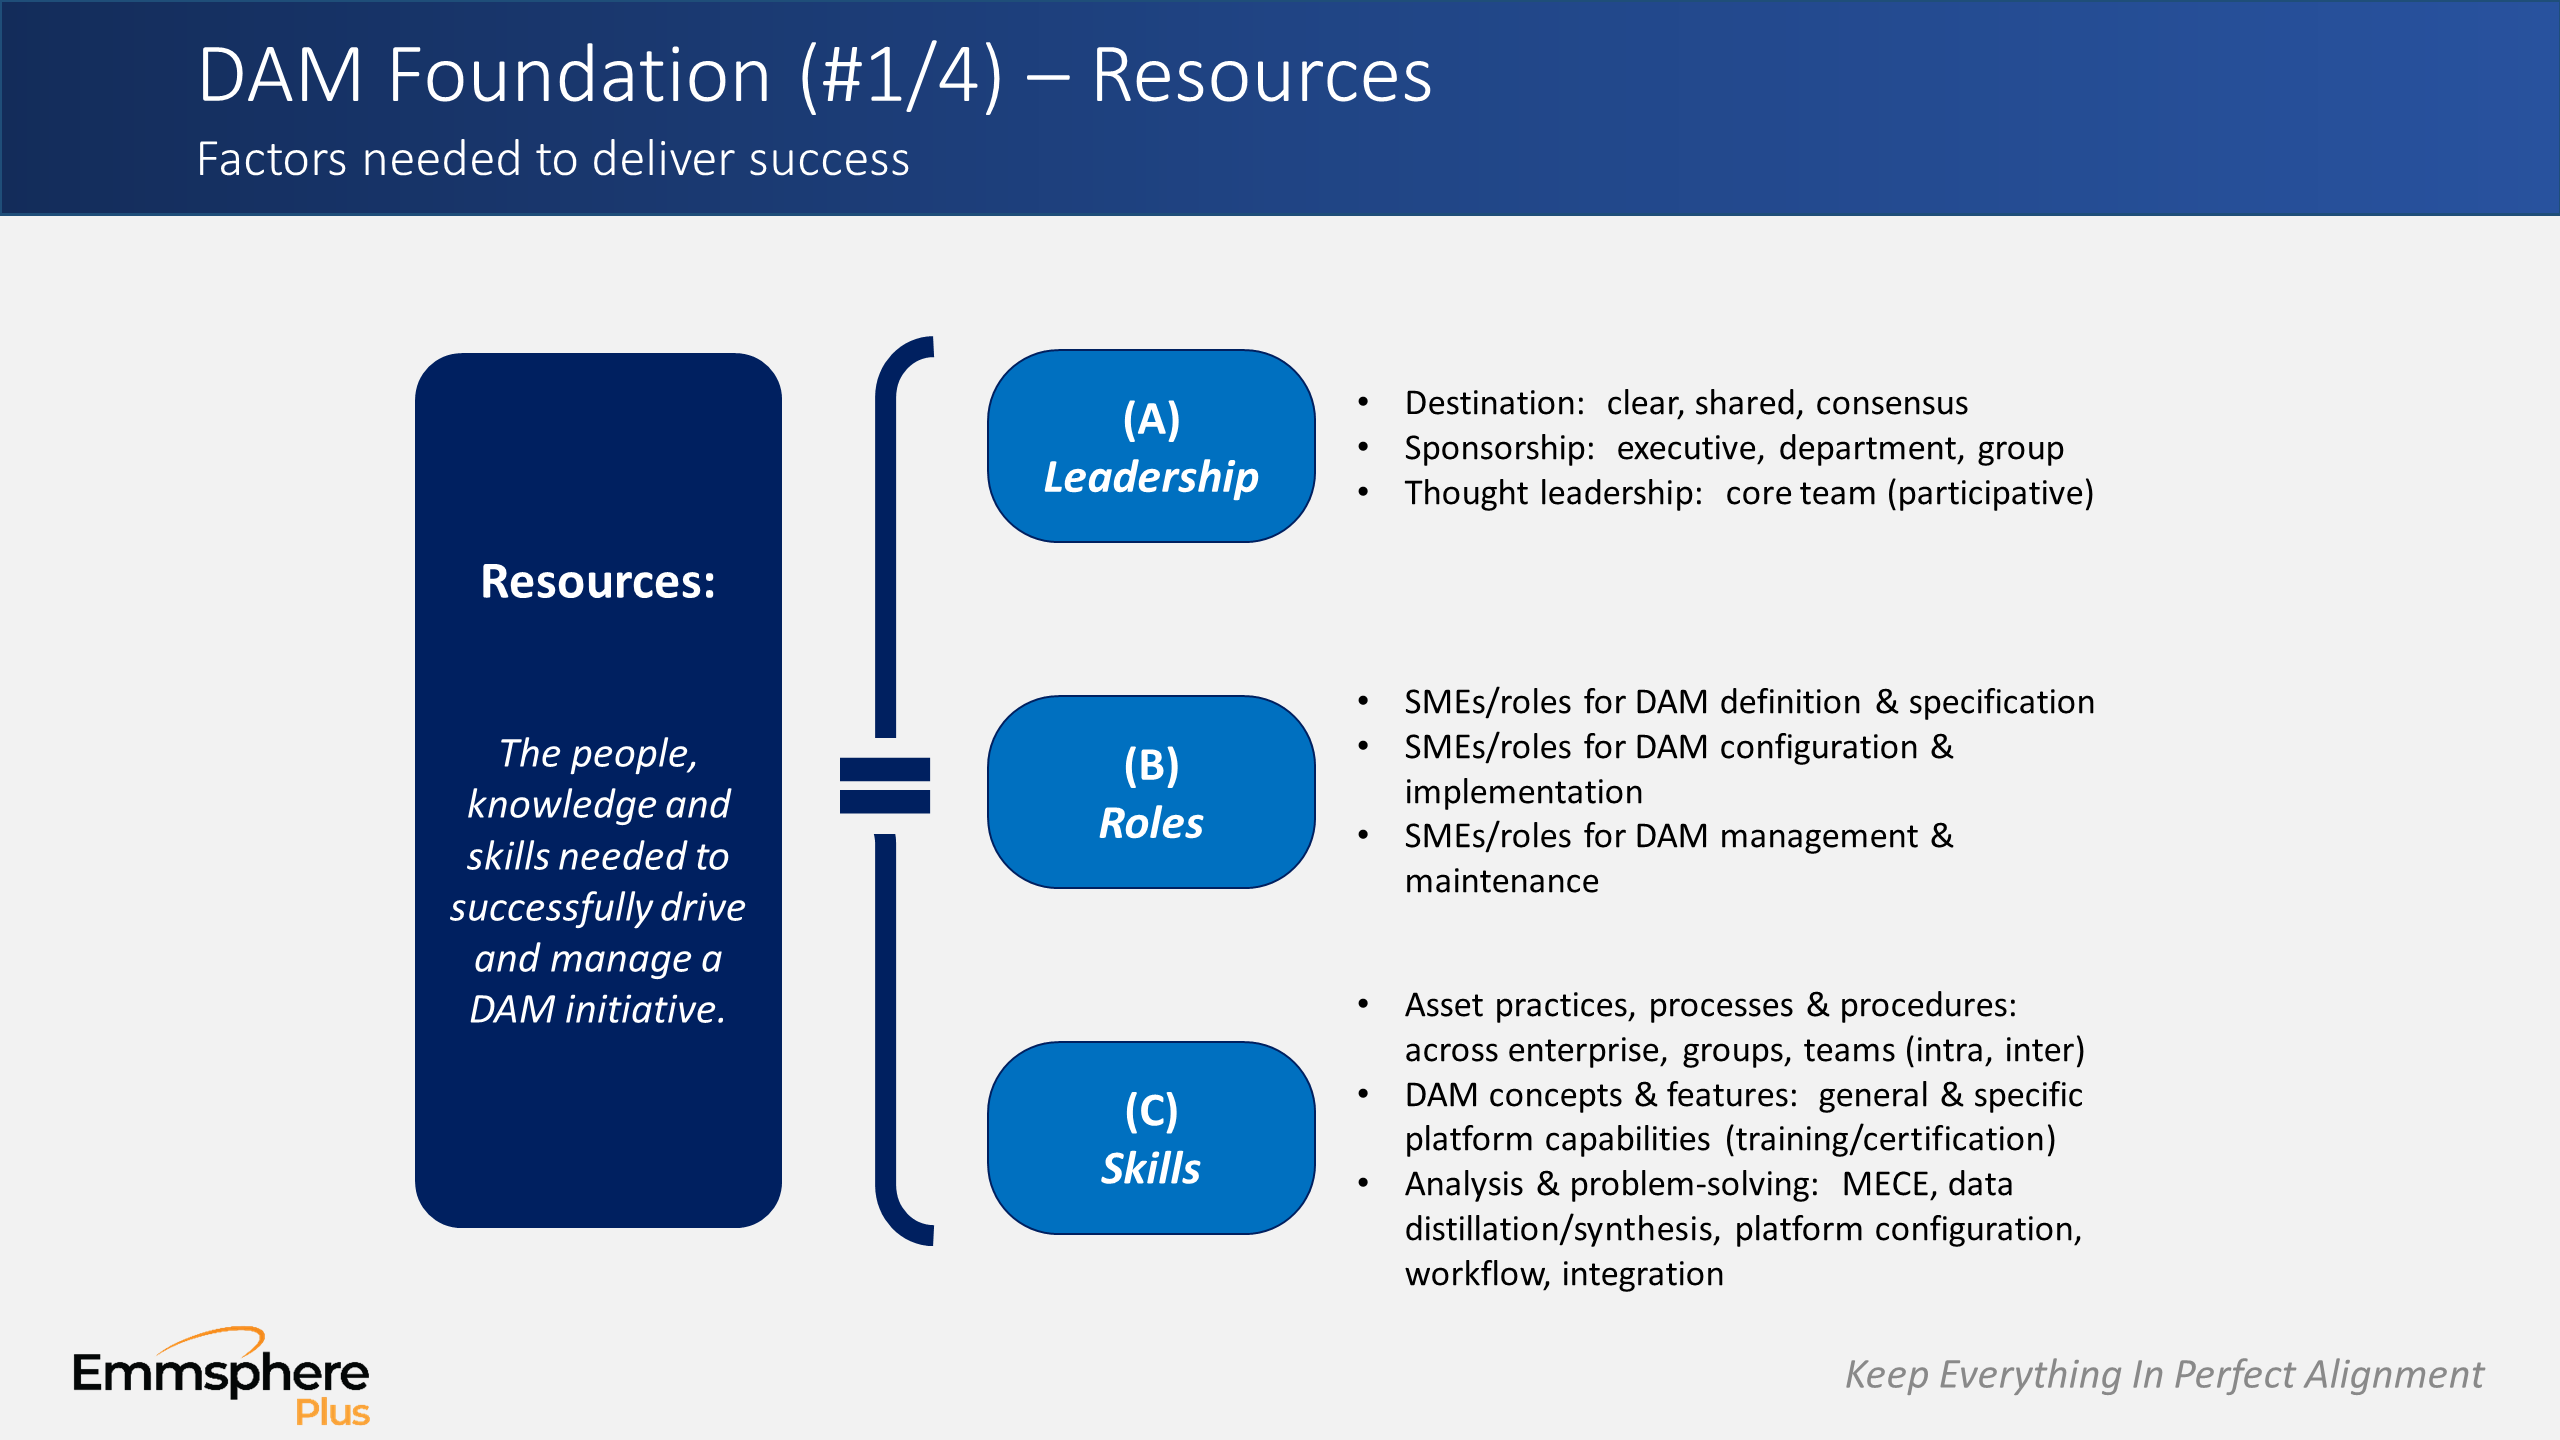 DAM Perspectives Part 4 – Resources